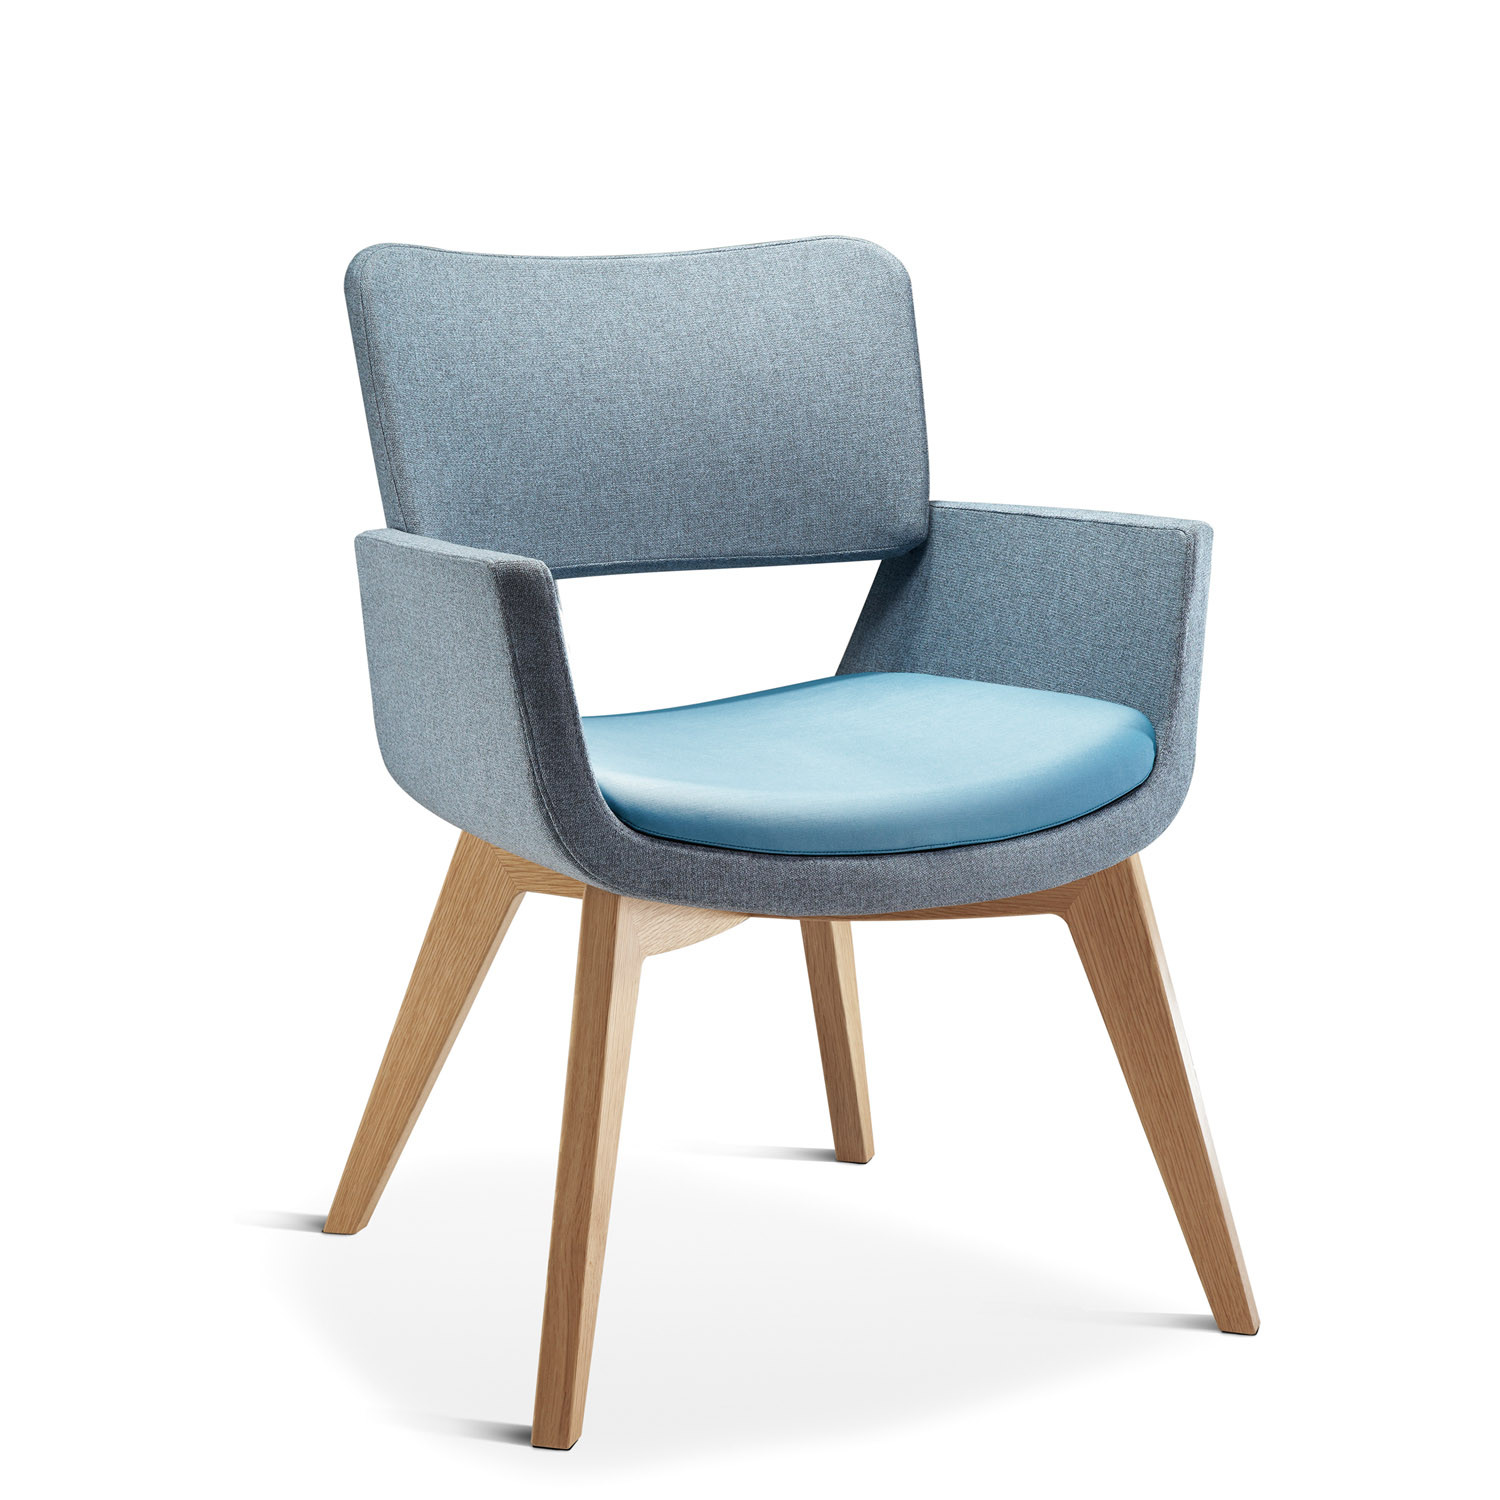 Korus Armchair with Wooden Legs